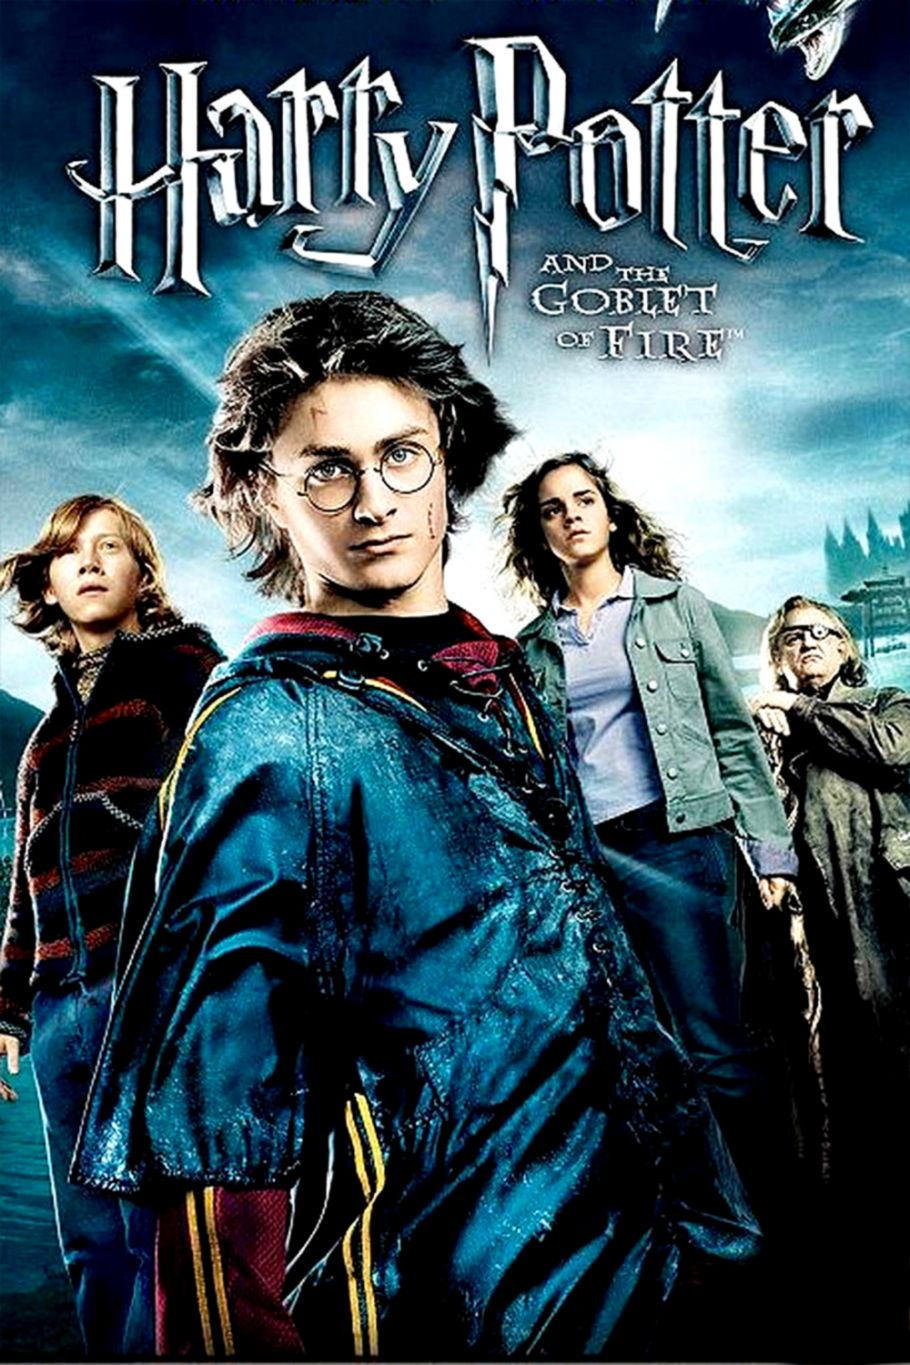 Aharry Potter And The Gobletharry Potter And The Goblet Of Fire